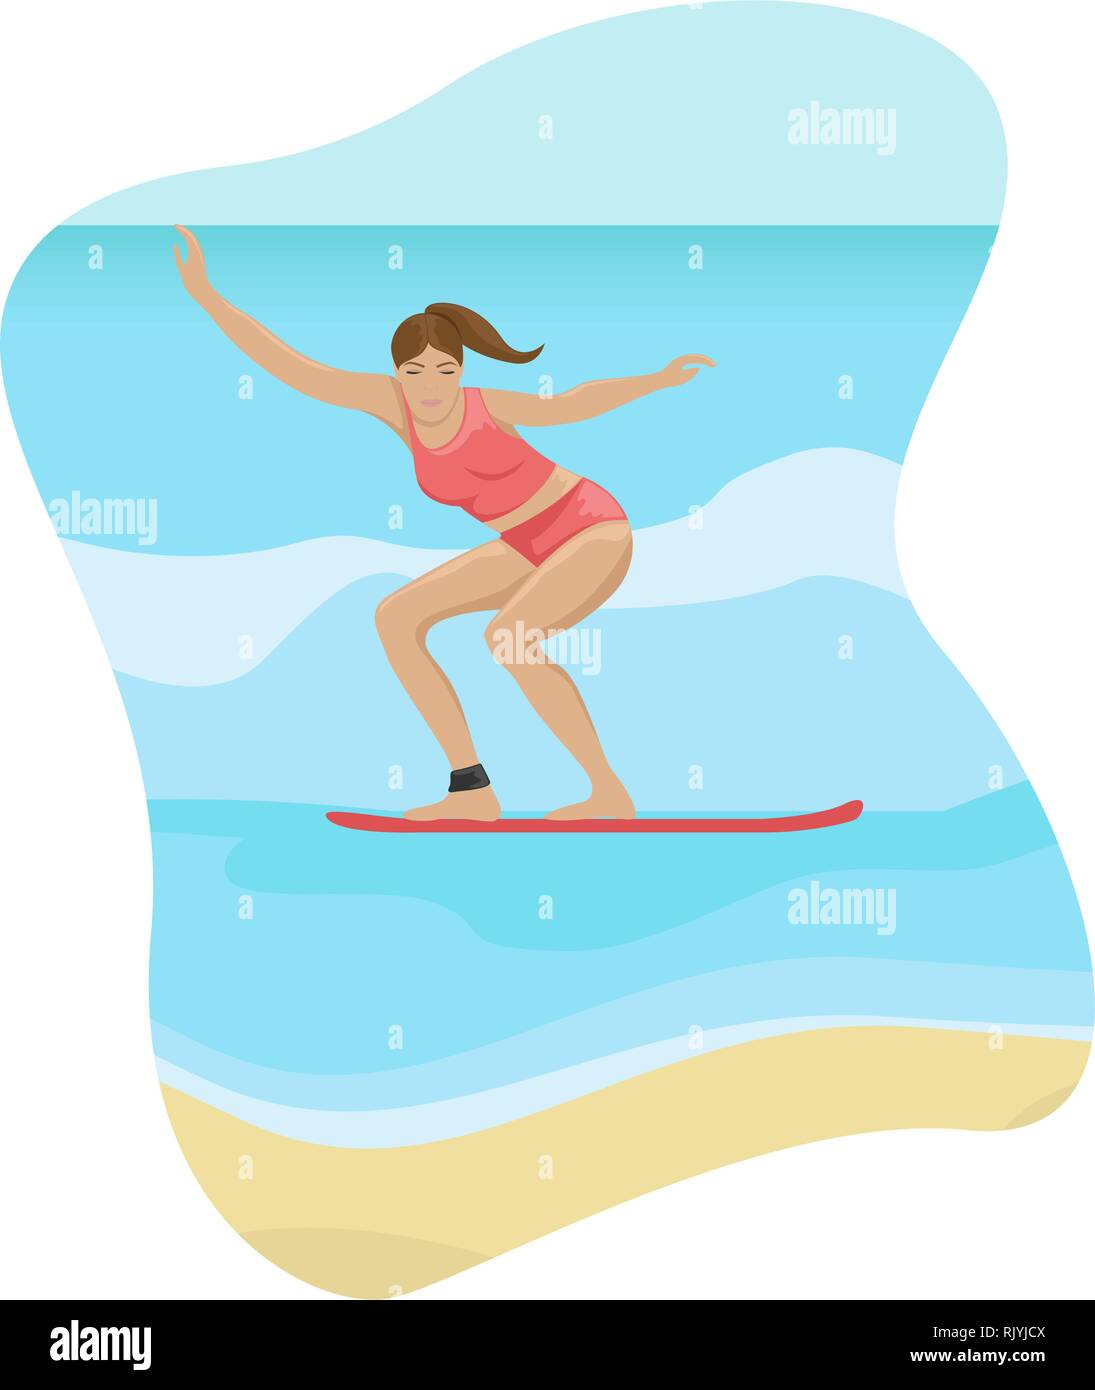 Beach landscape. Girl surfing on the waves. Flat vector illustration. - Stock Image